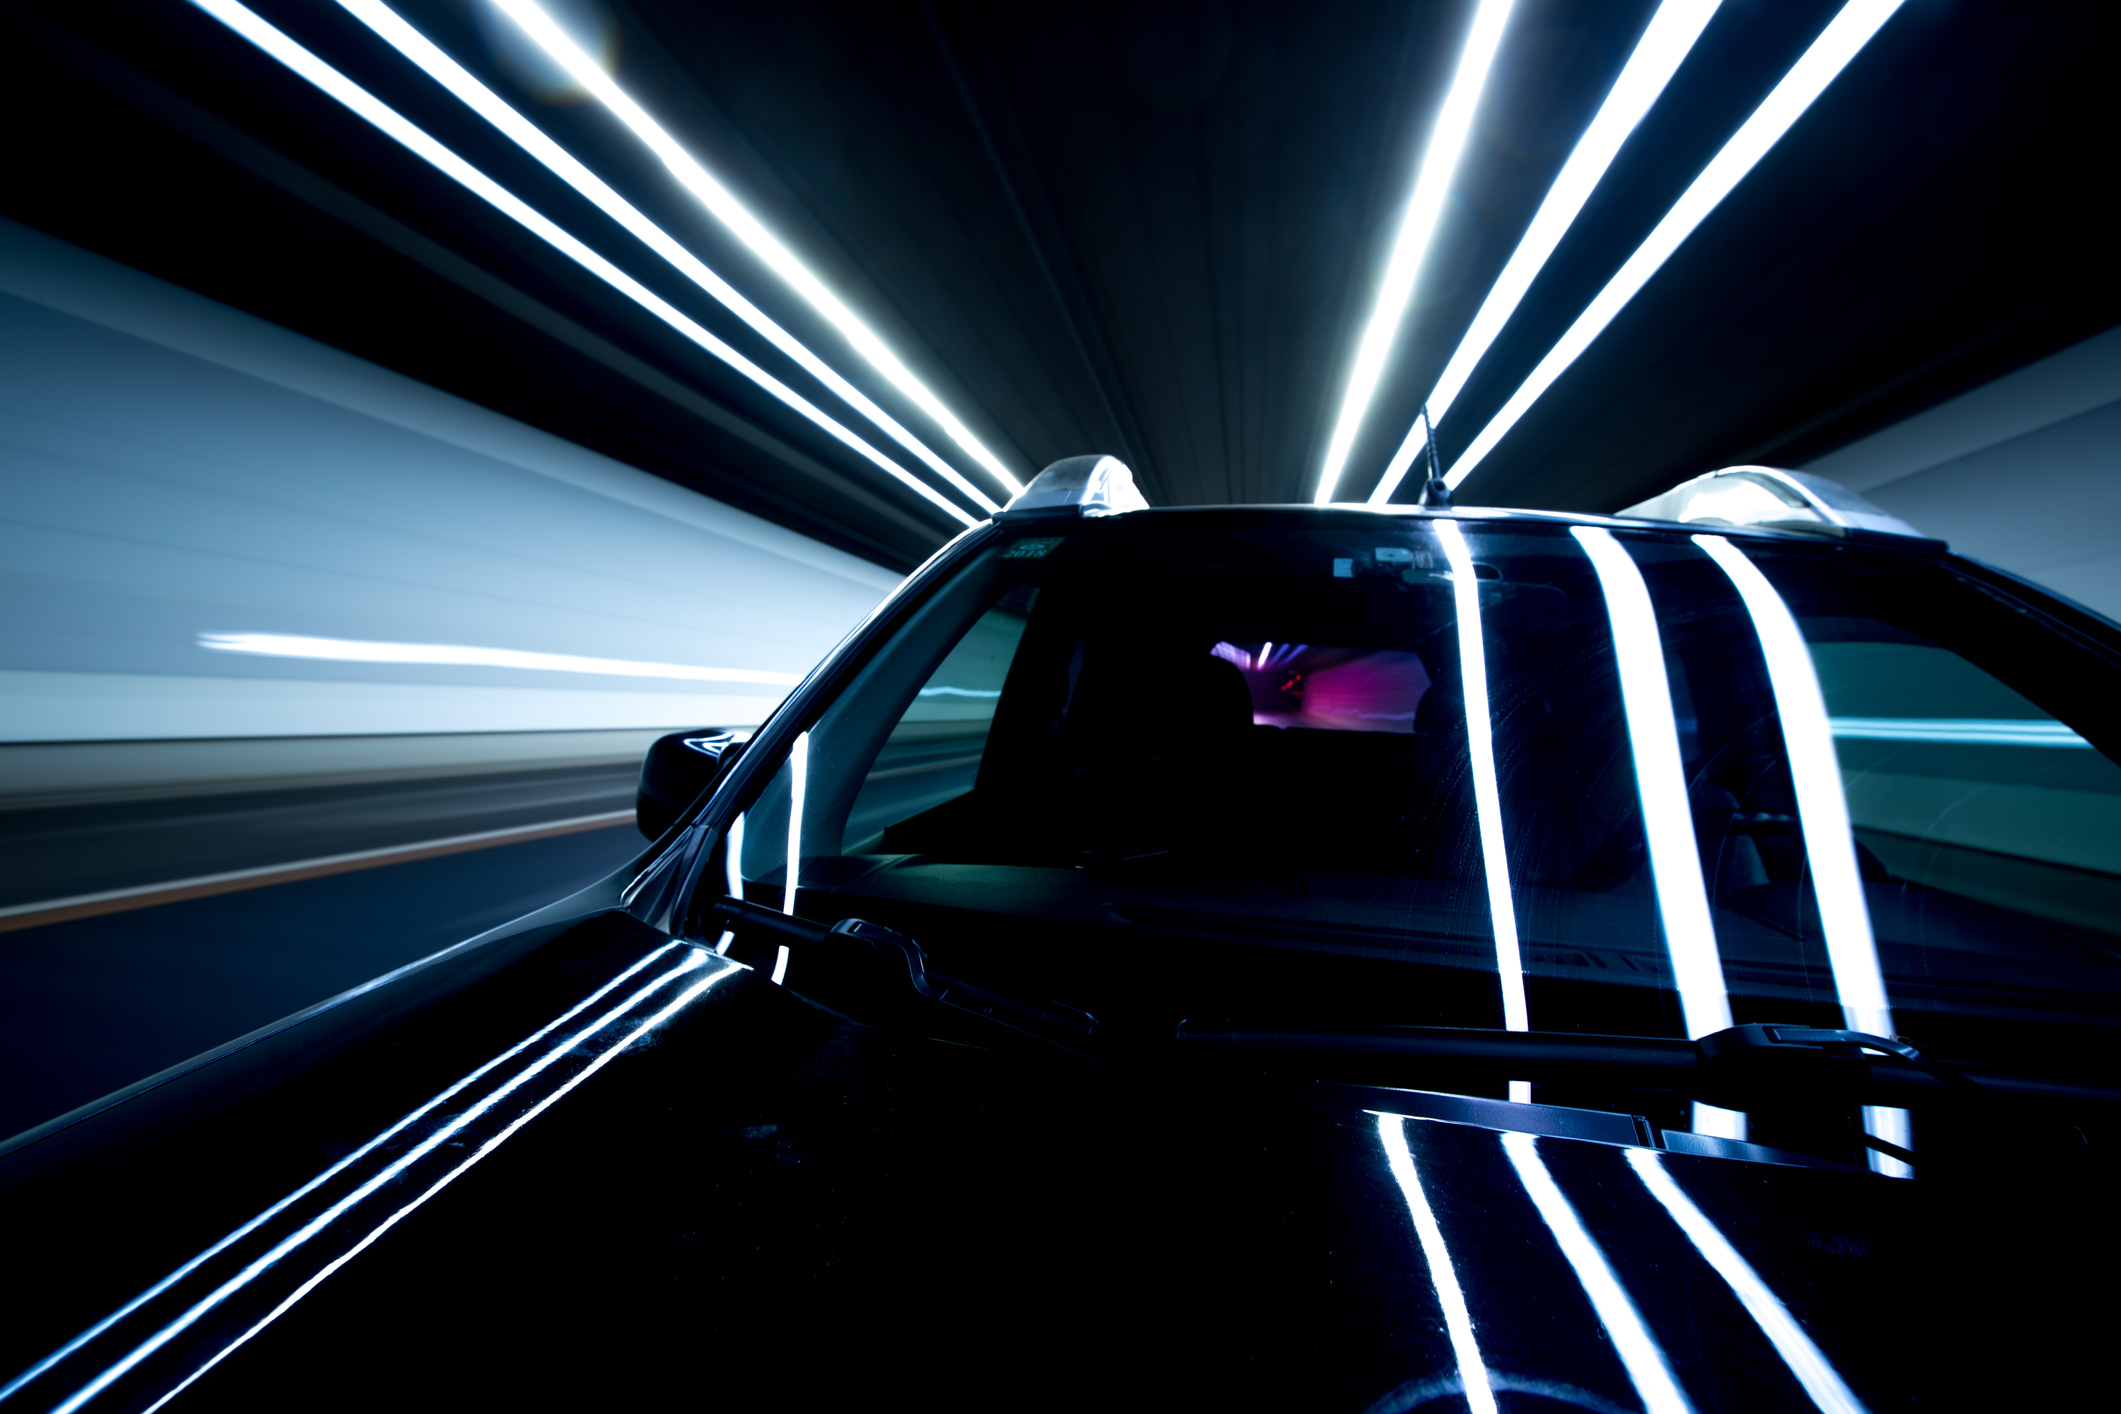 close-up of black car in motion inside lit tunnel